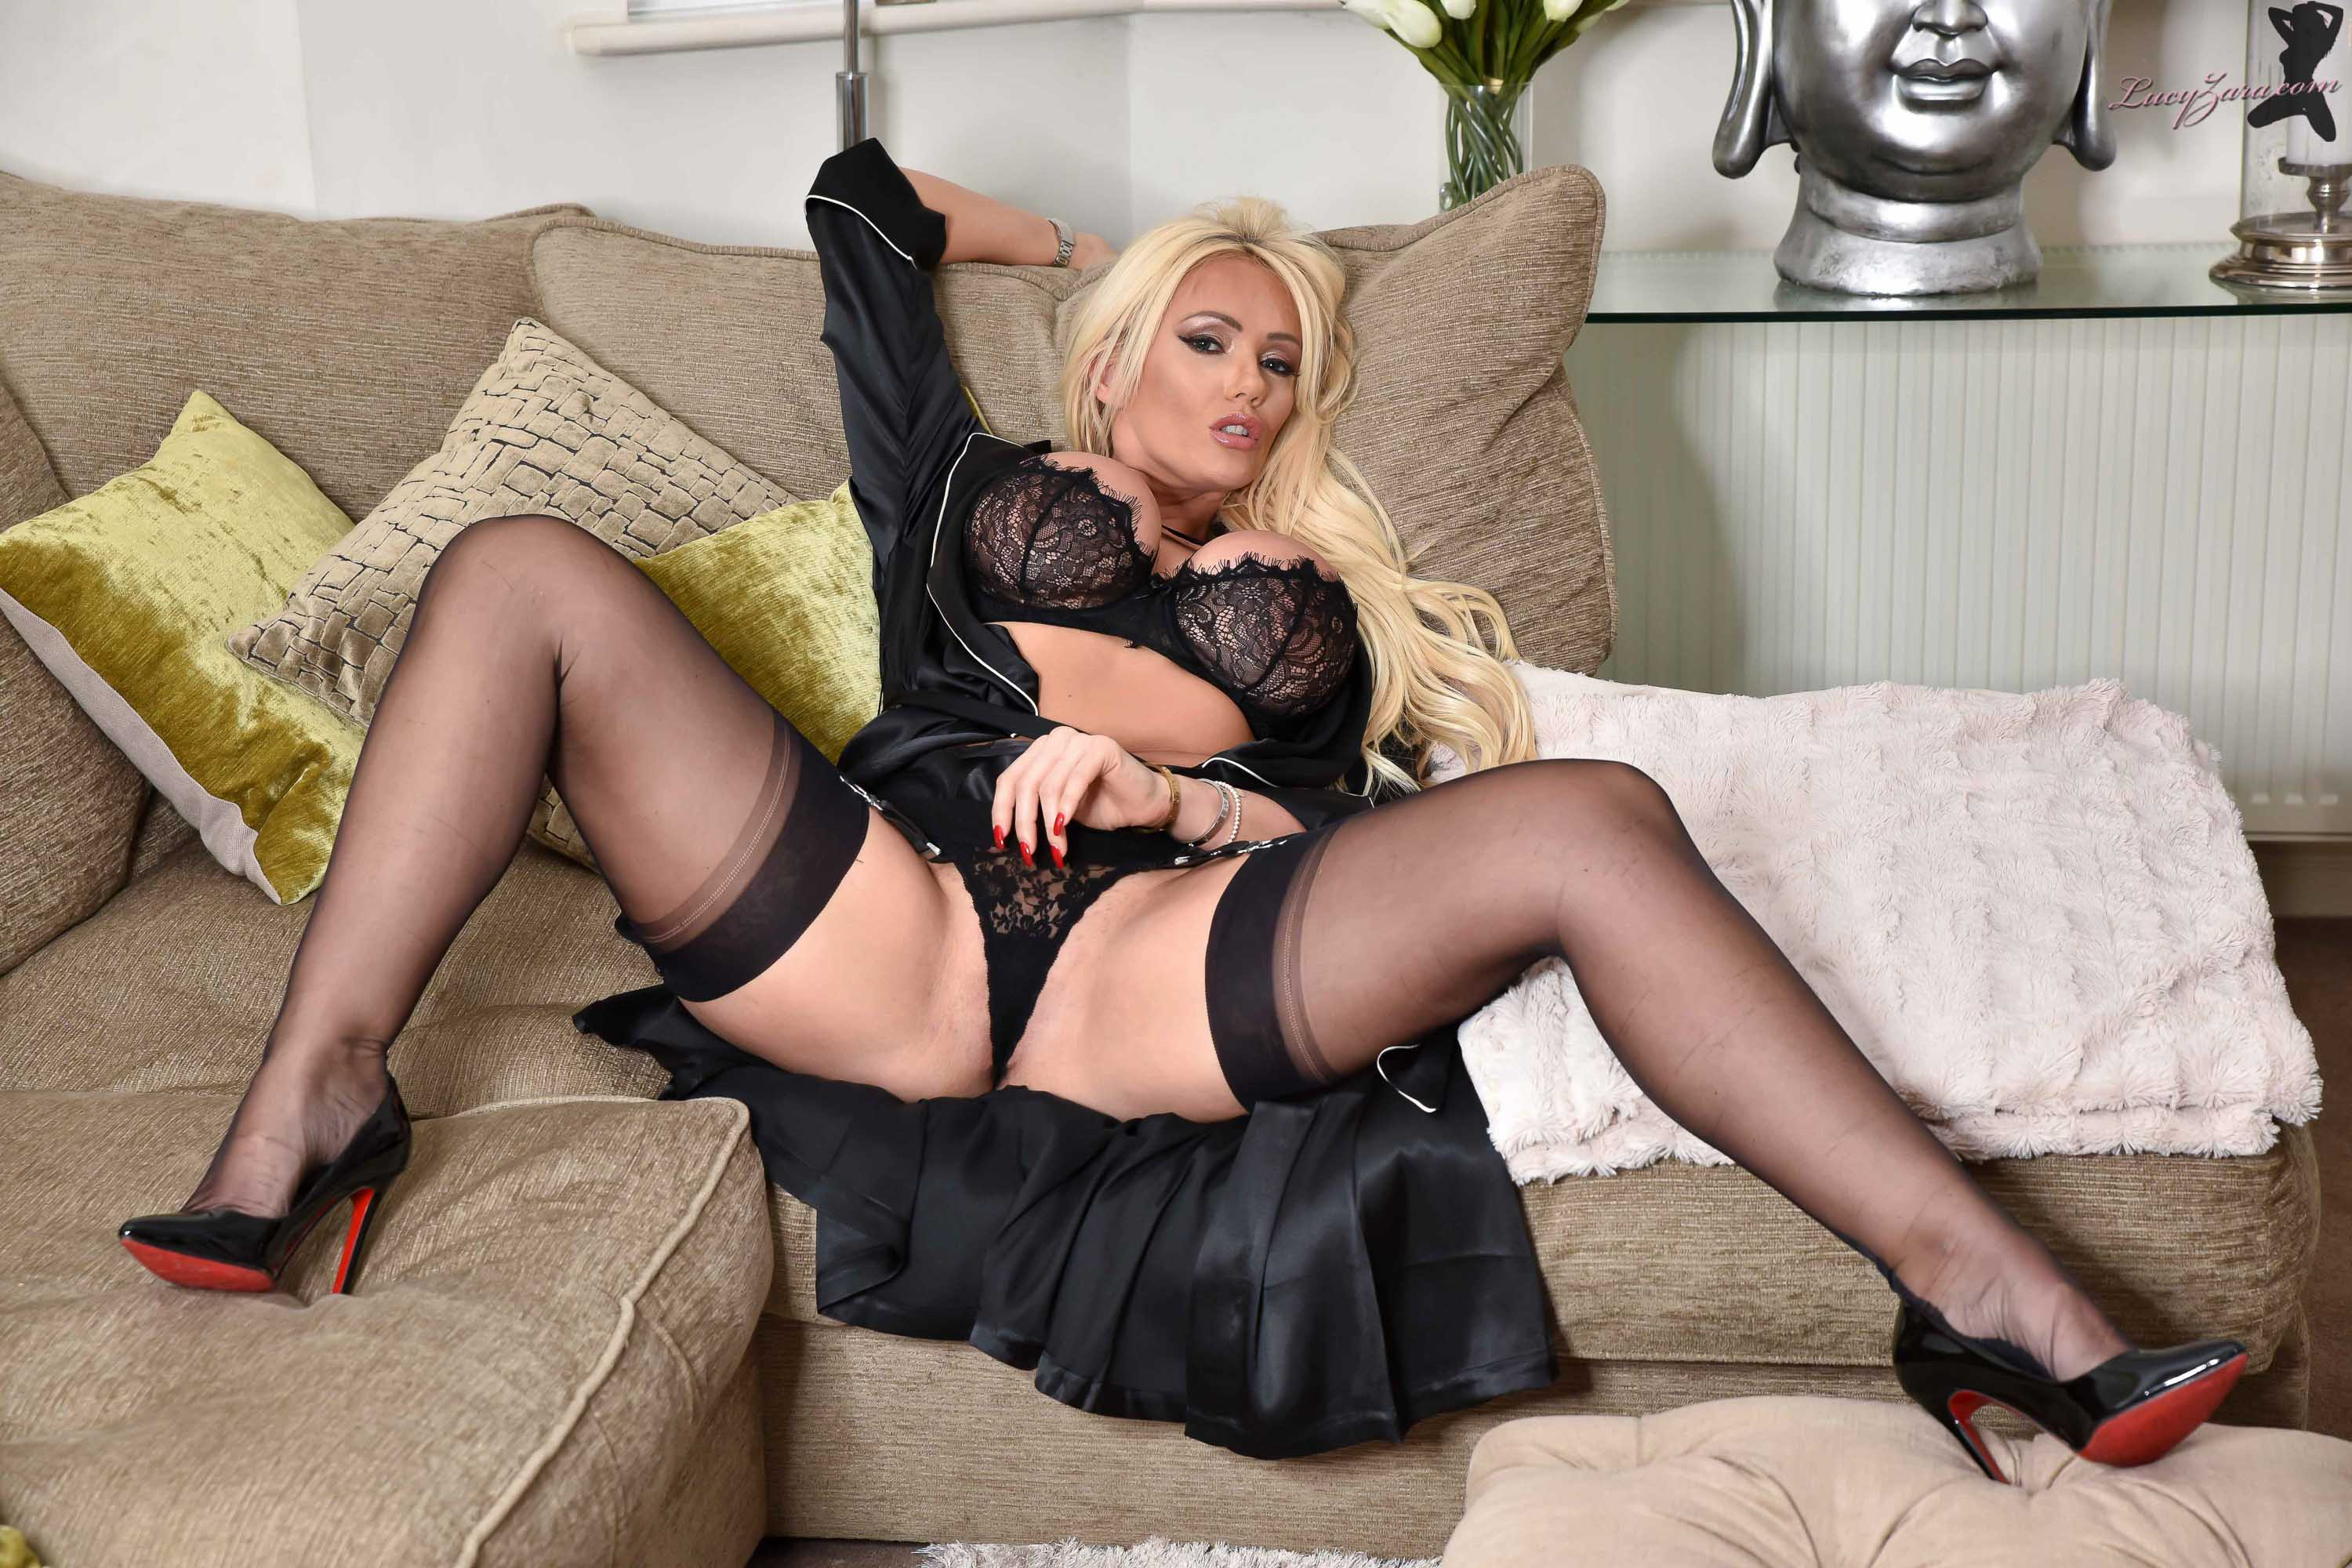 Wonderfull lucy zara clips that big fat